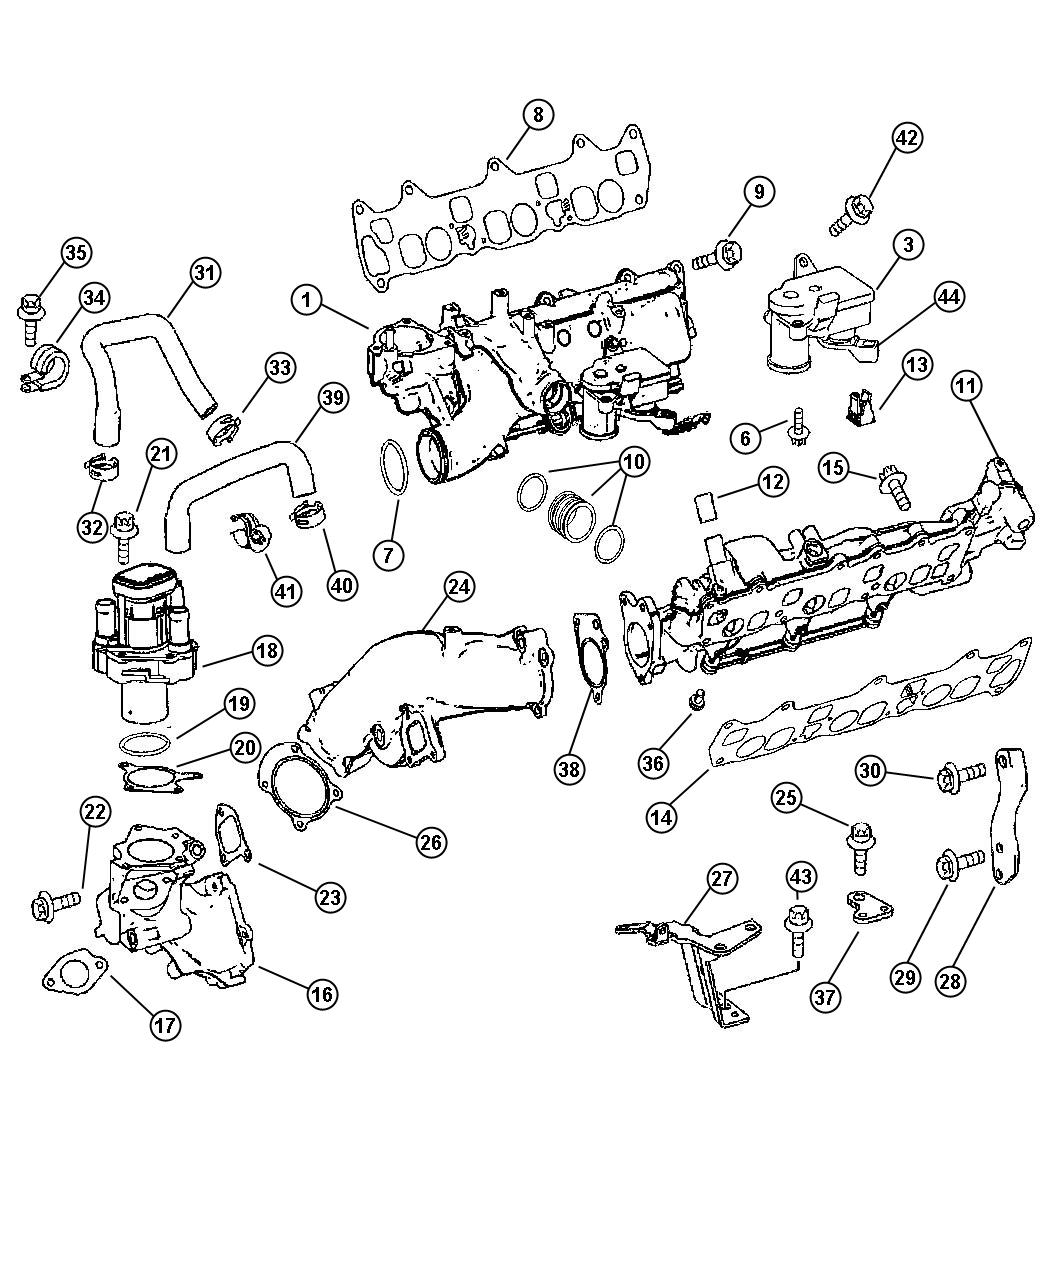 2010 Sprinter Engine Diagram Intake Best Secret Wiring Mercedes Fuel Filter Location Dodge Ram Van 2500 Get Free Image 2007